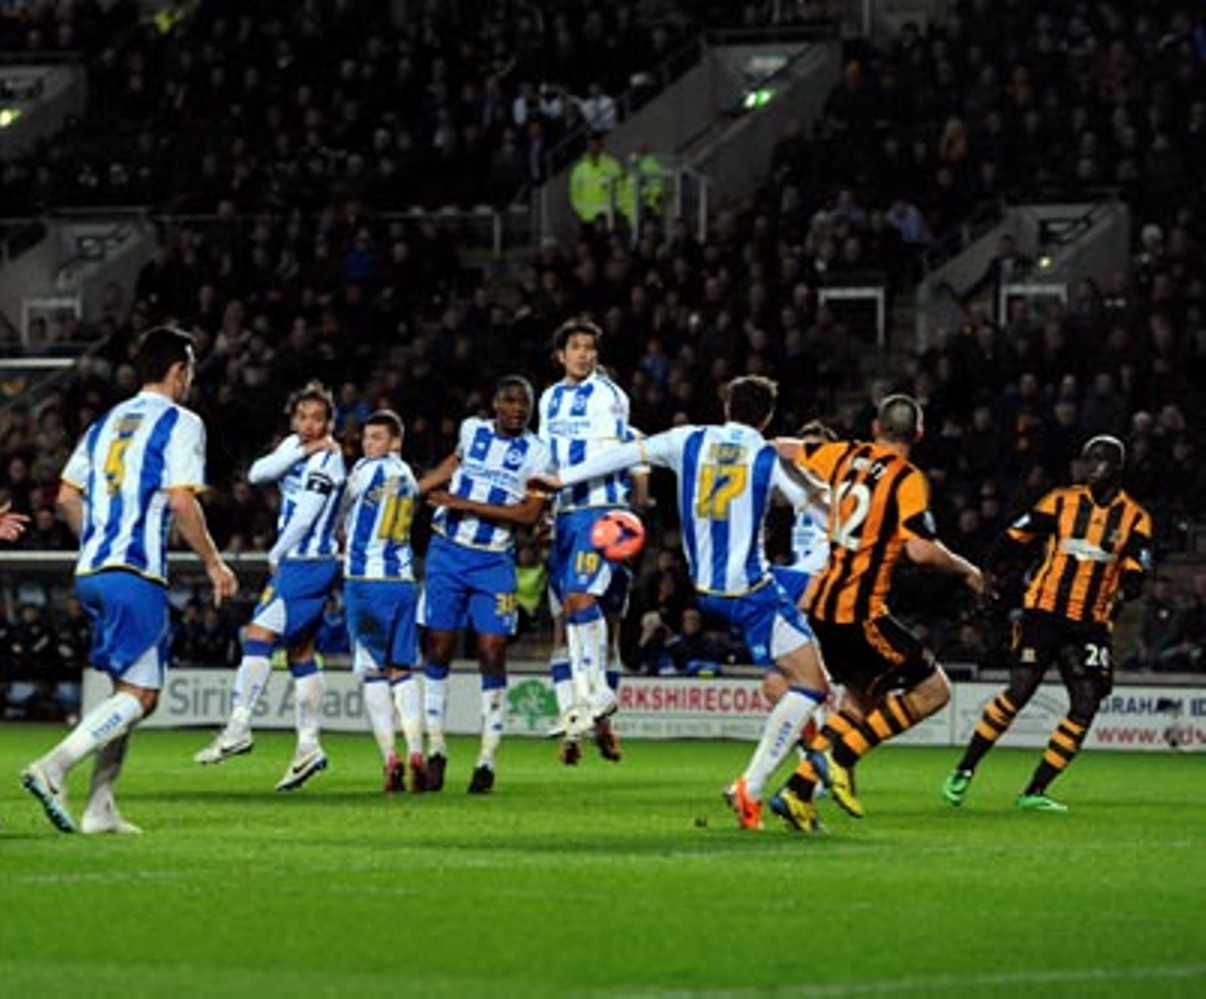 Matty Fryatt (No.12) gets goalside of Stephen Ward - but was he offside?